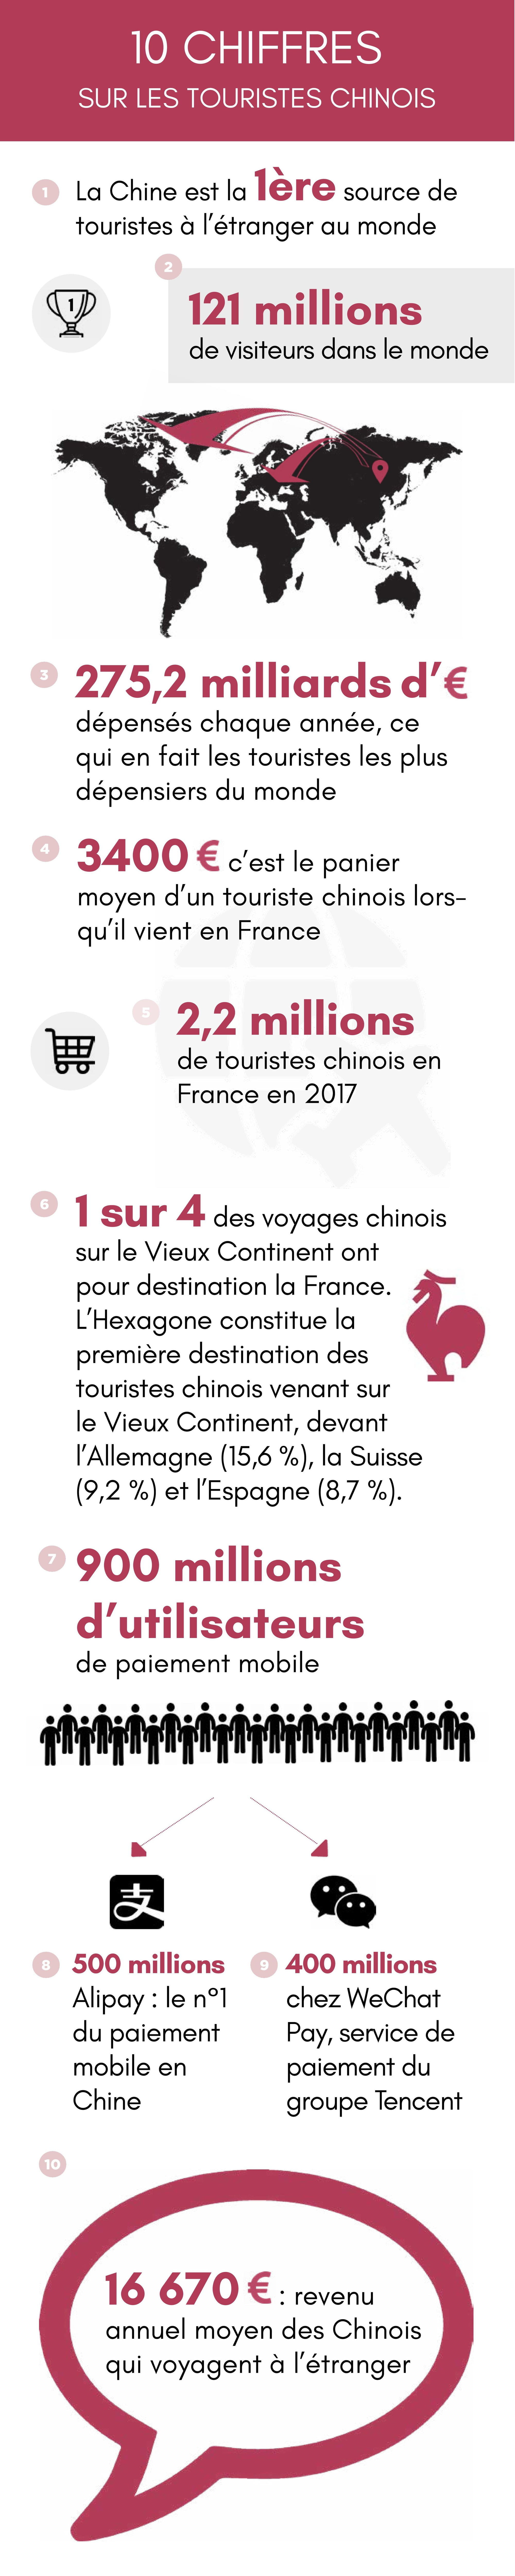 infographie-page-001.jpg